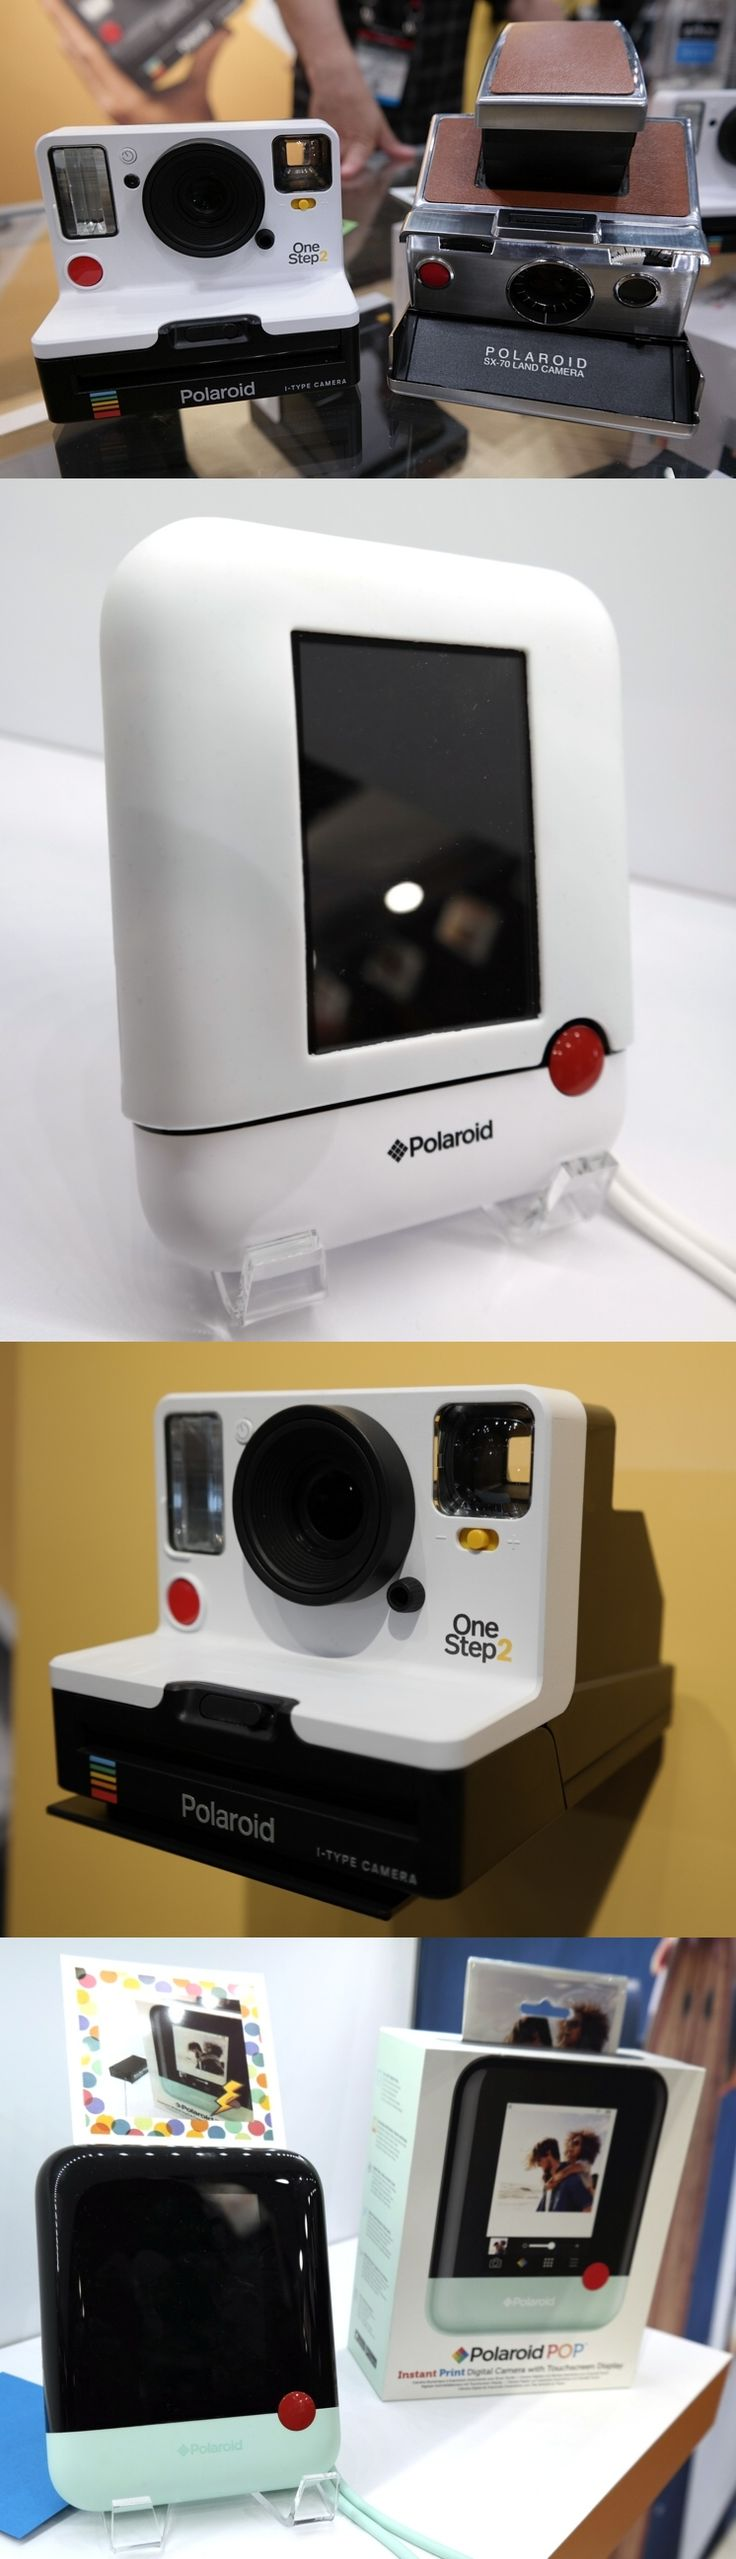 The new $100 Polaroid OneStep 2 and refurbished 1970s-vintage Polaroid SX-70 ($400) instant cameras are ready for the holiday season thanks to Polaroid Originals, which also manufactures classic Polaroid films. The boxy, 20-megapixel Polaroid Pop ($200) instant digital camera, made under license by C+A Global, uses ink-free Zink thermal paper instead of Polaroid film. The Pop has a 4-inch touchscreen, yields 3.5-by-4.5-inch prints and can take 1080p videos. CLICK THE PIC for more…